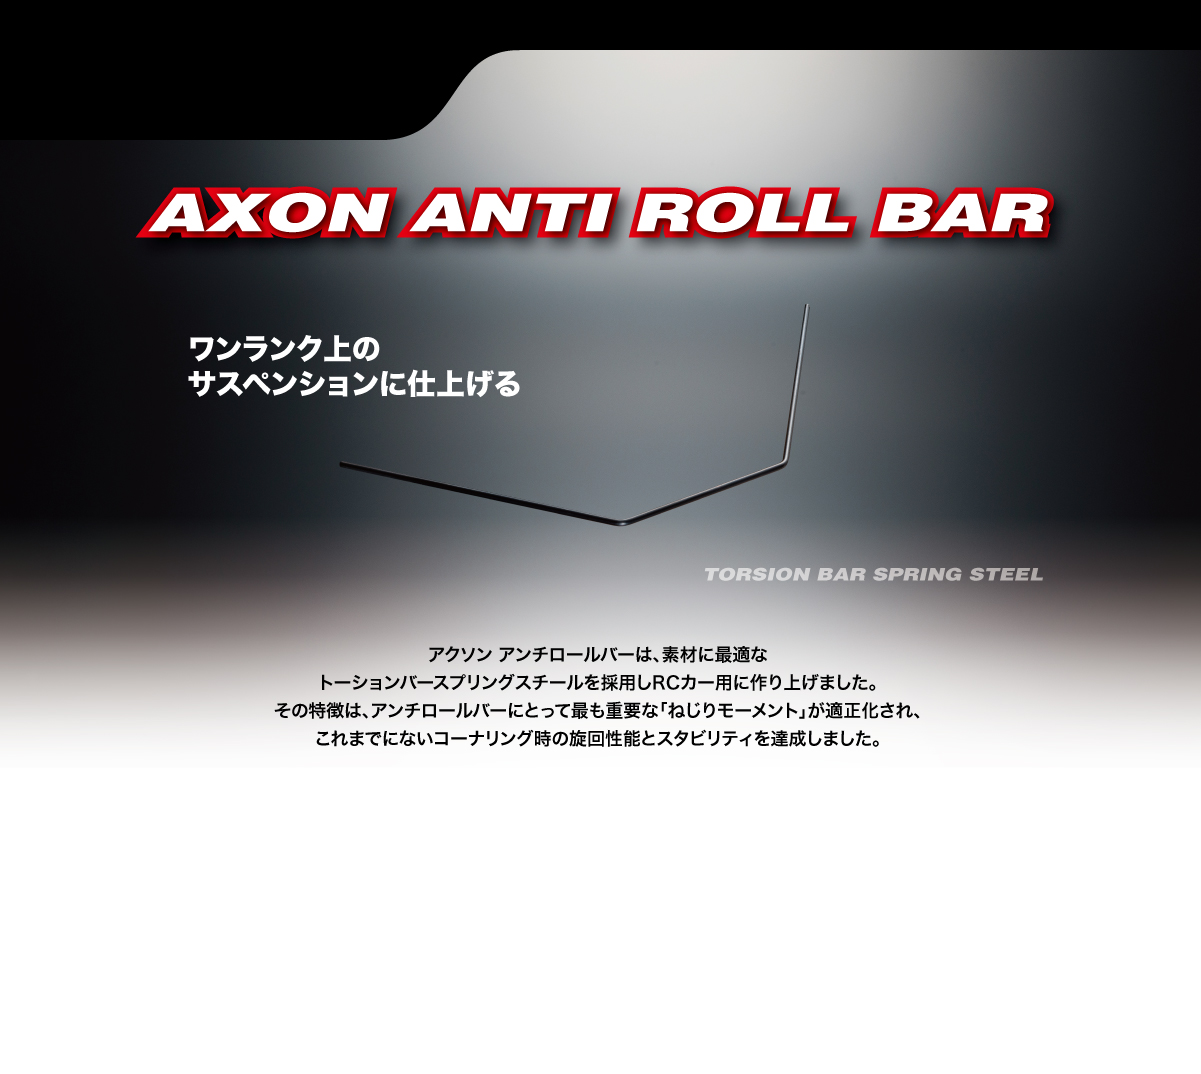 AXON AT-IF-013 AXON ANTI ROLL BAR IF14 FRONT 1.3mm